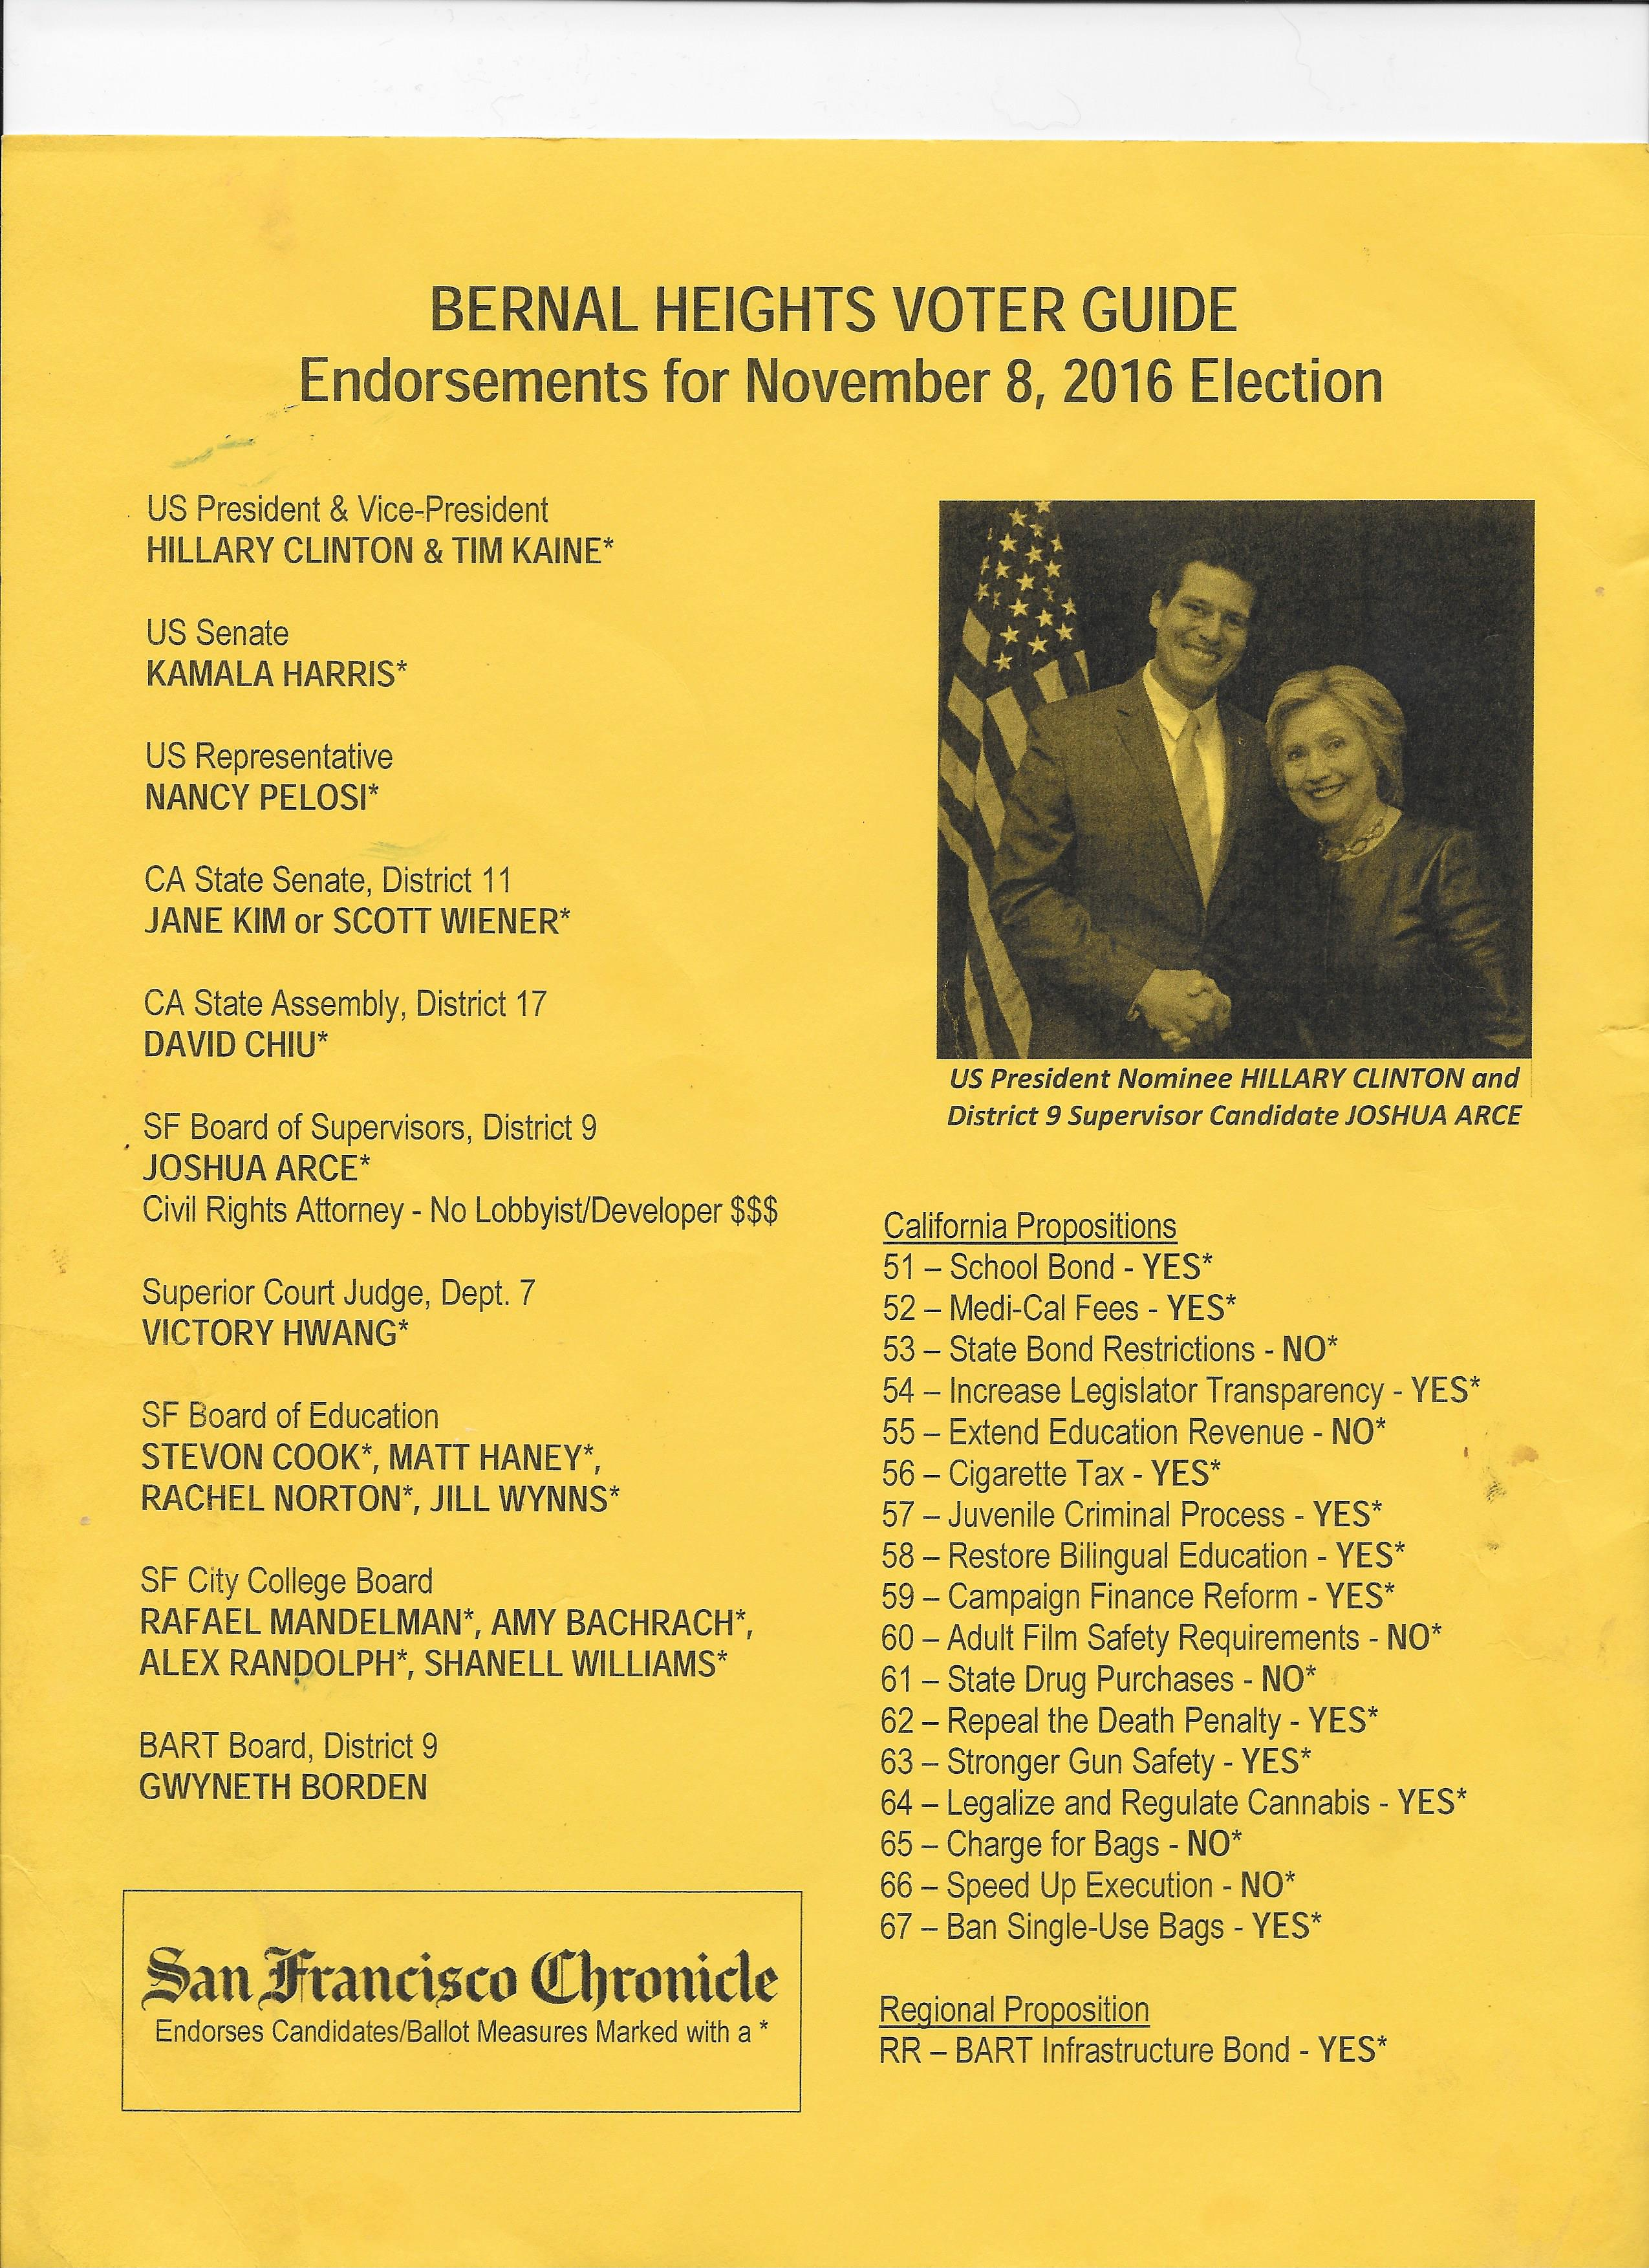 This is a fake slate card trying to mimic the Bernal Heights Democratic Club, which endorsed Ronen not Arce